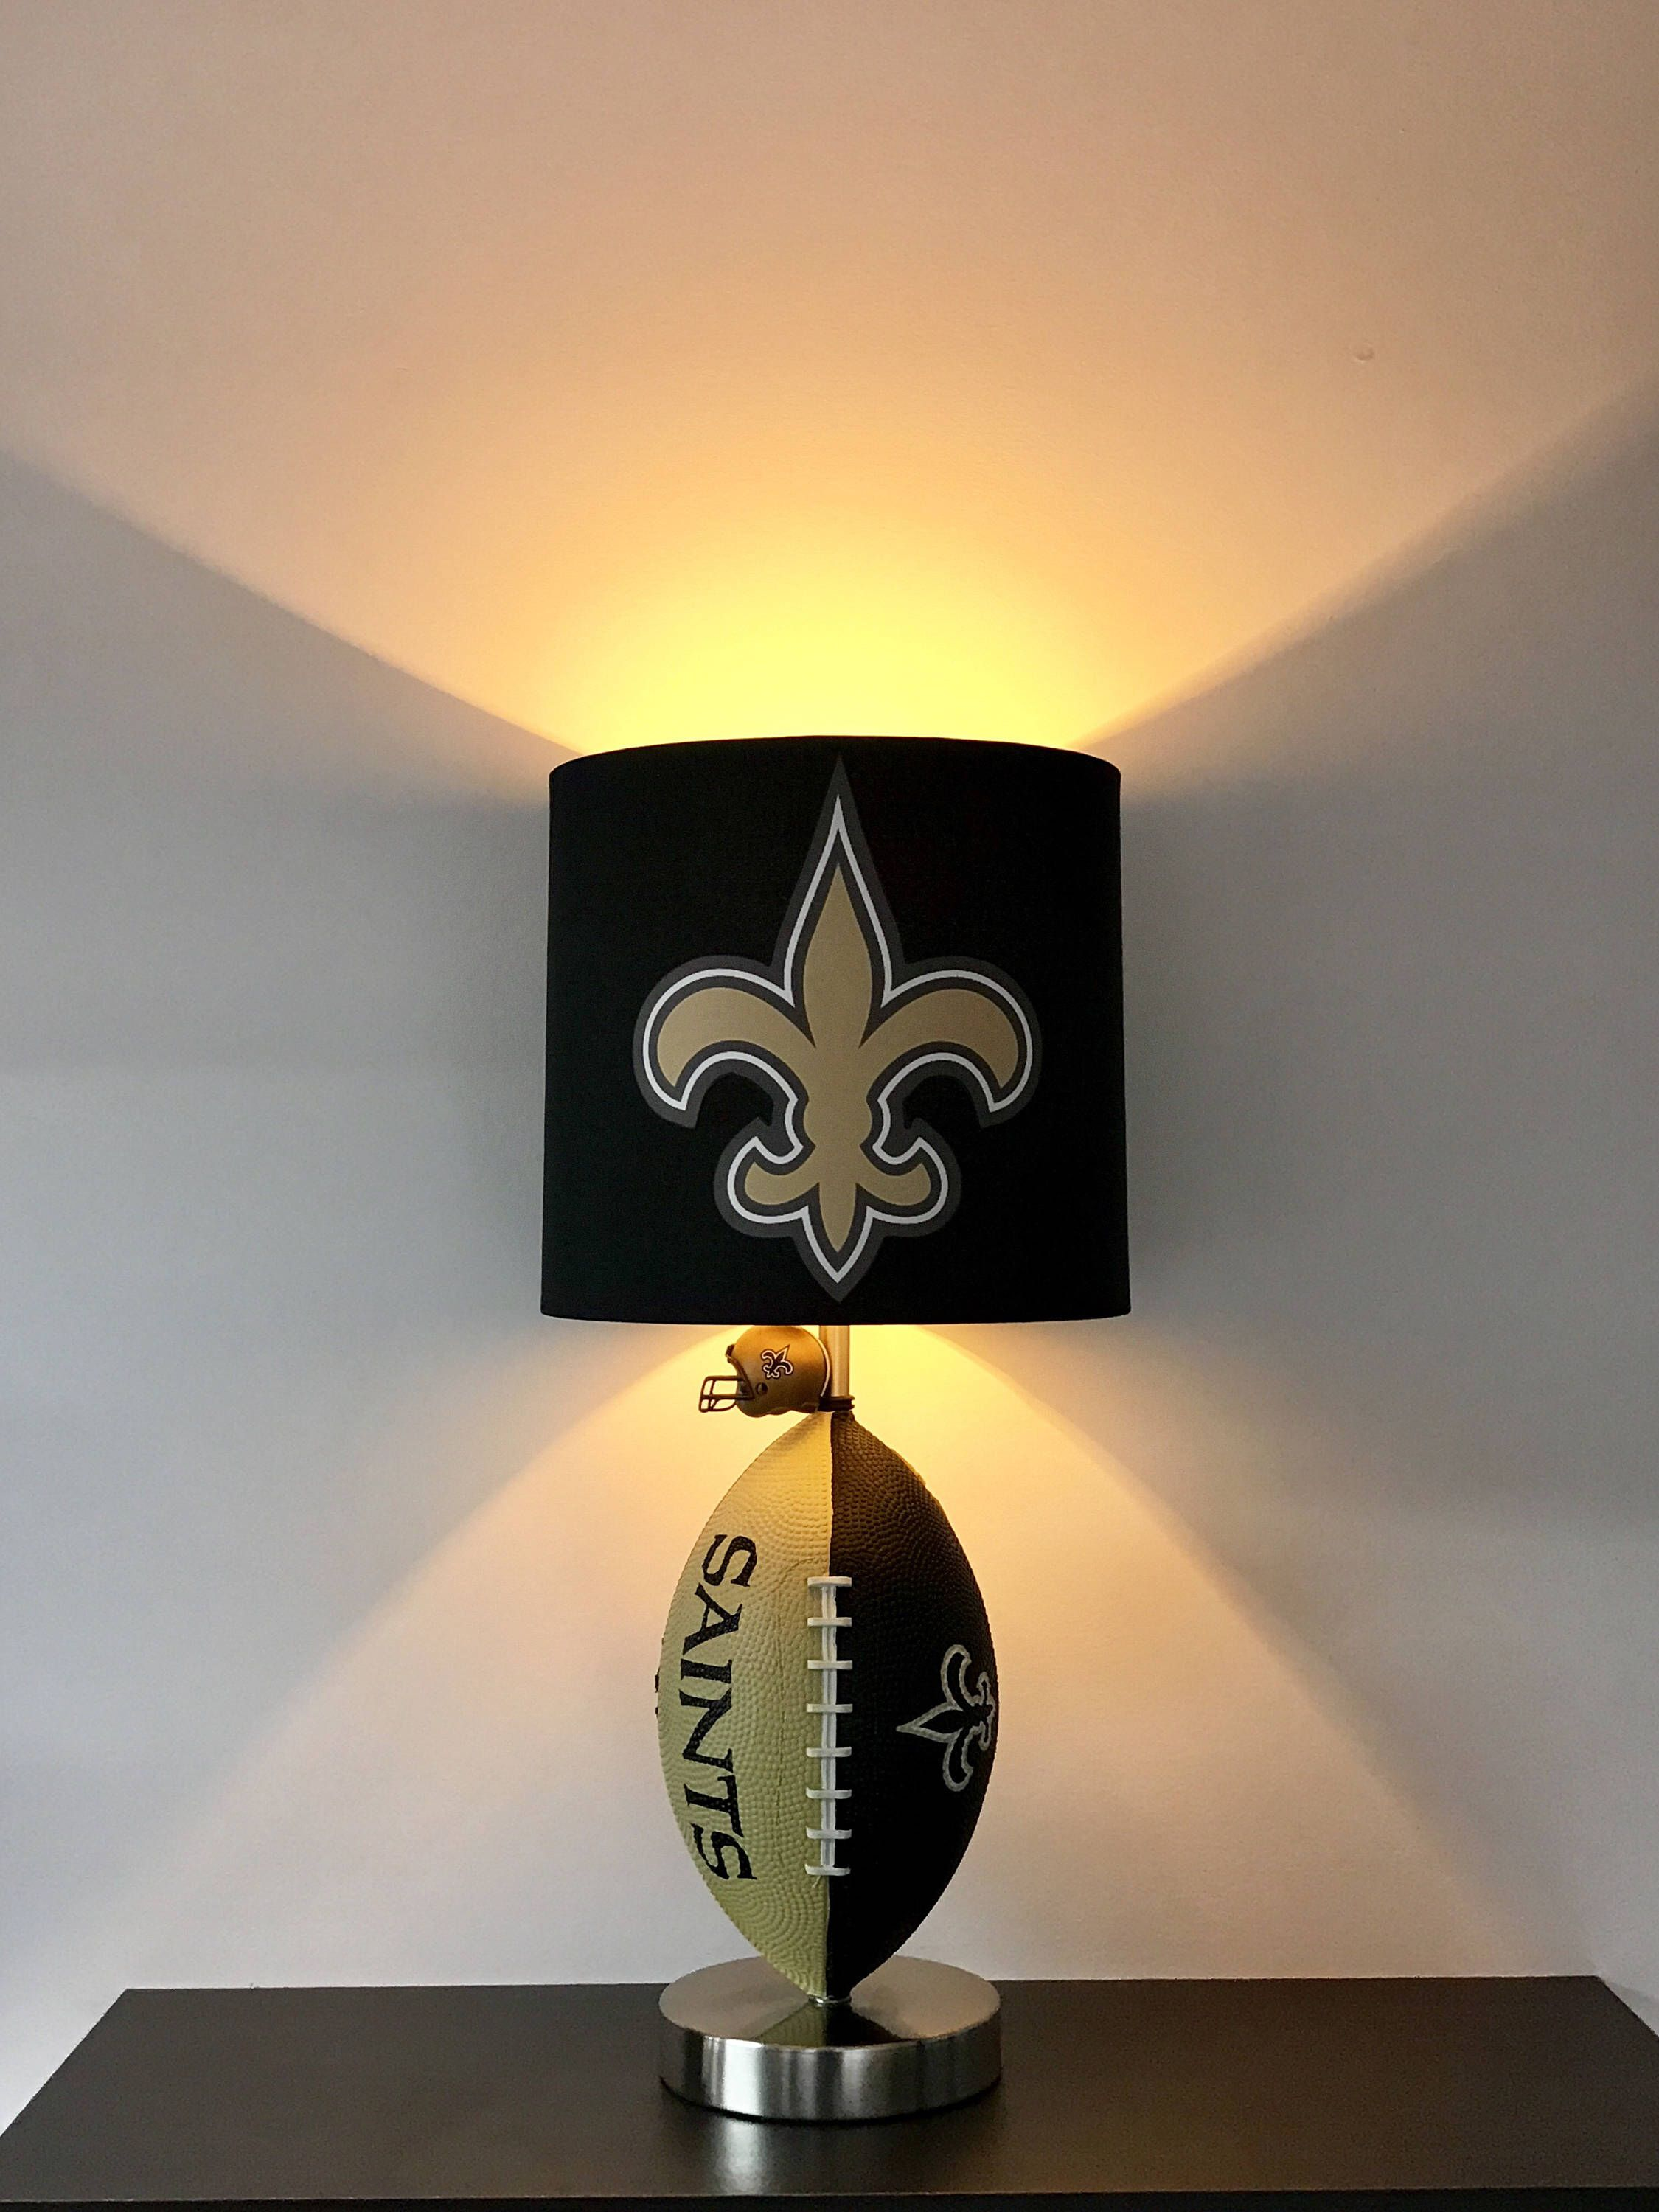 Nfl New Orleans Saints Lamp Man Cave Decor Sports Night Light Table Kids Unique Gift Football